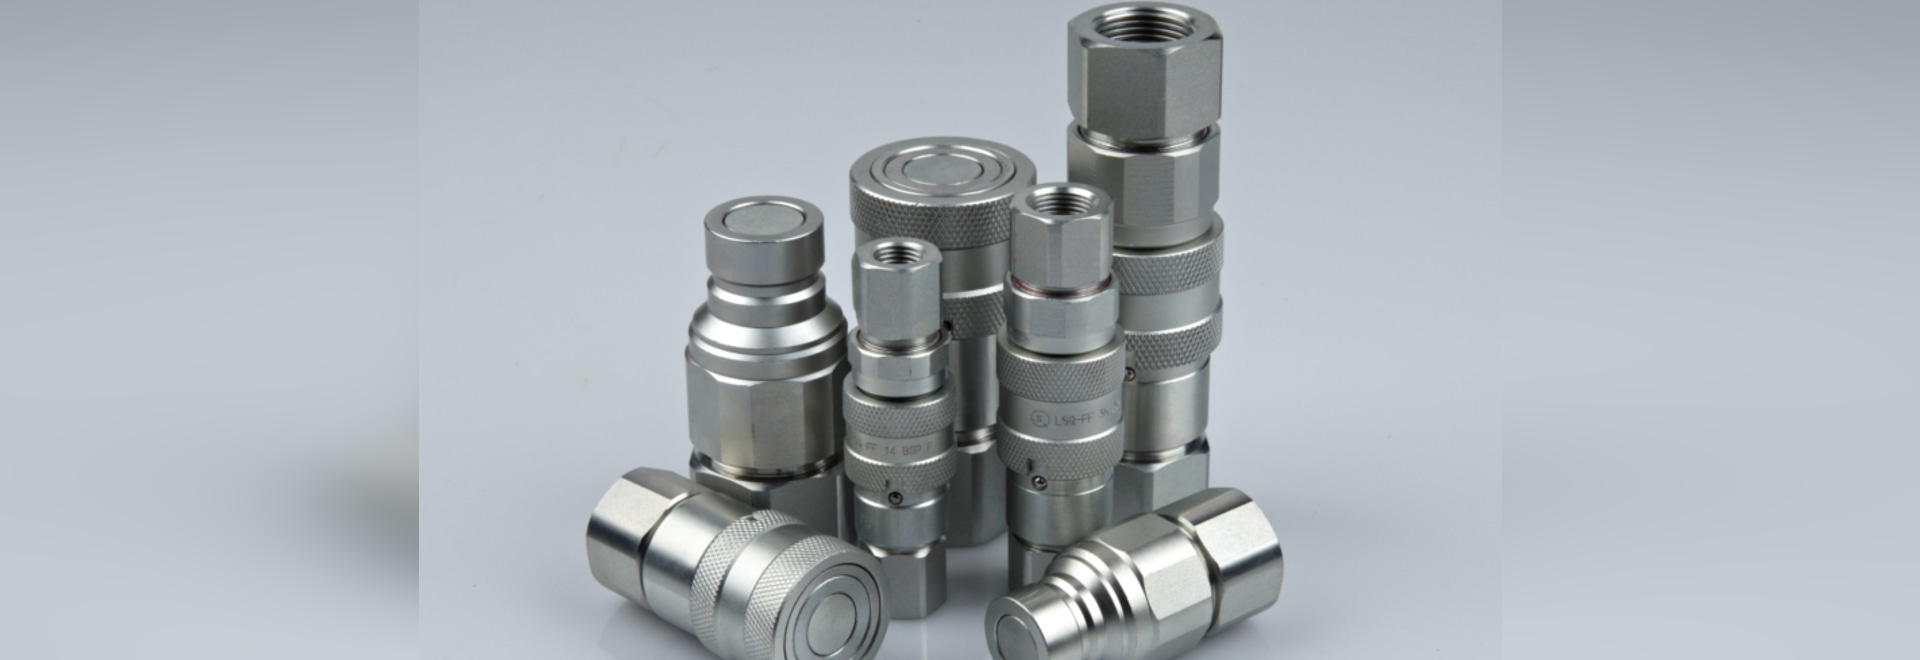 Female quick coupling / threaded / flat face / steel